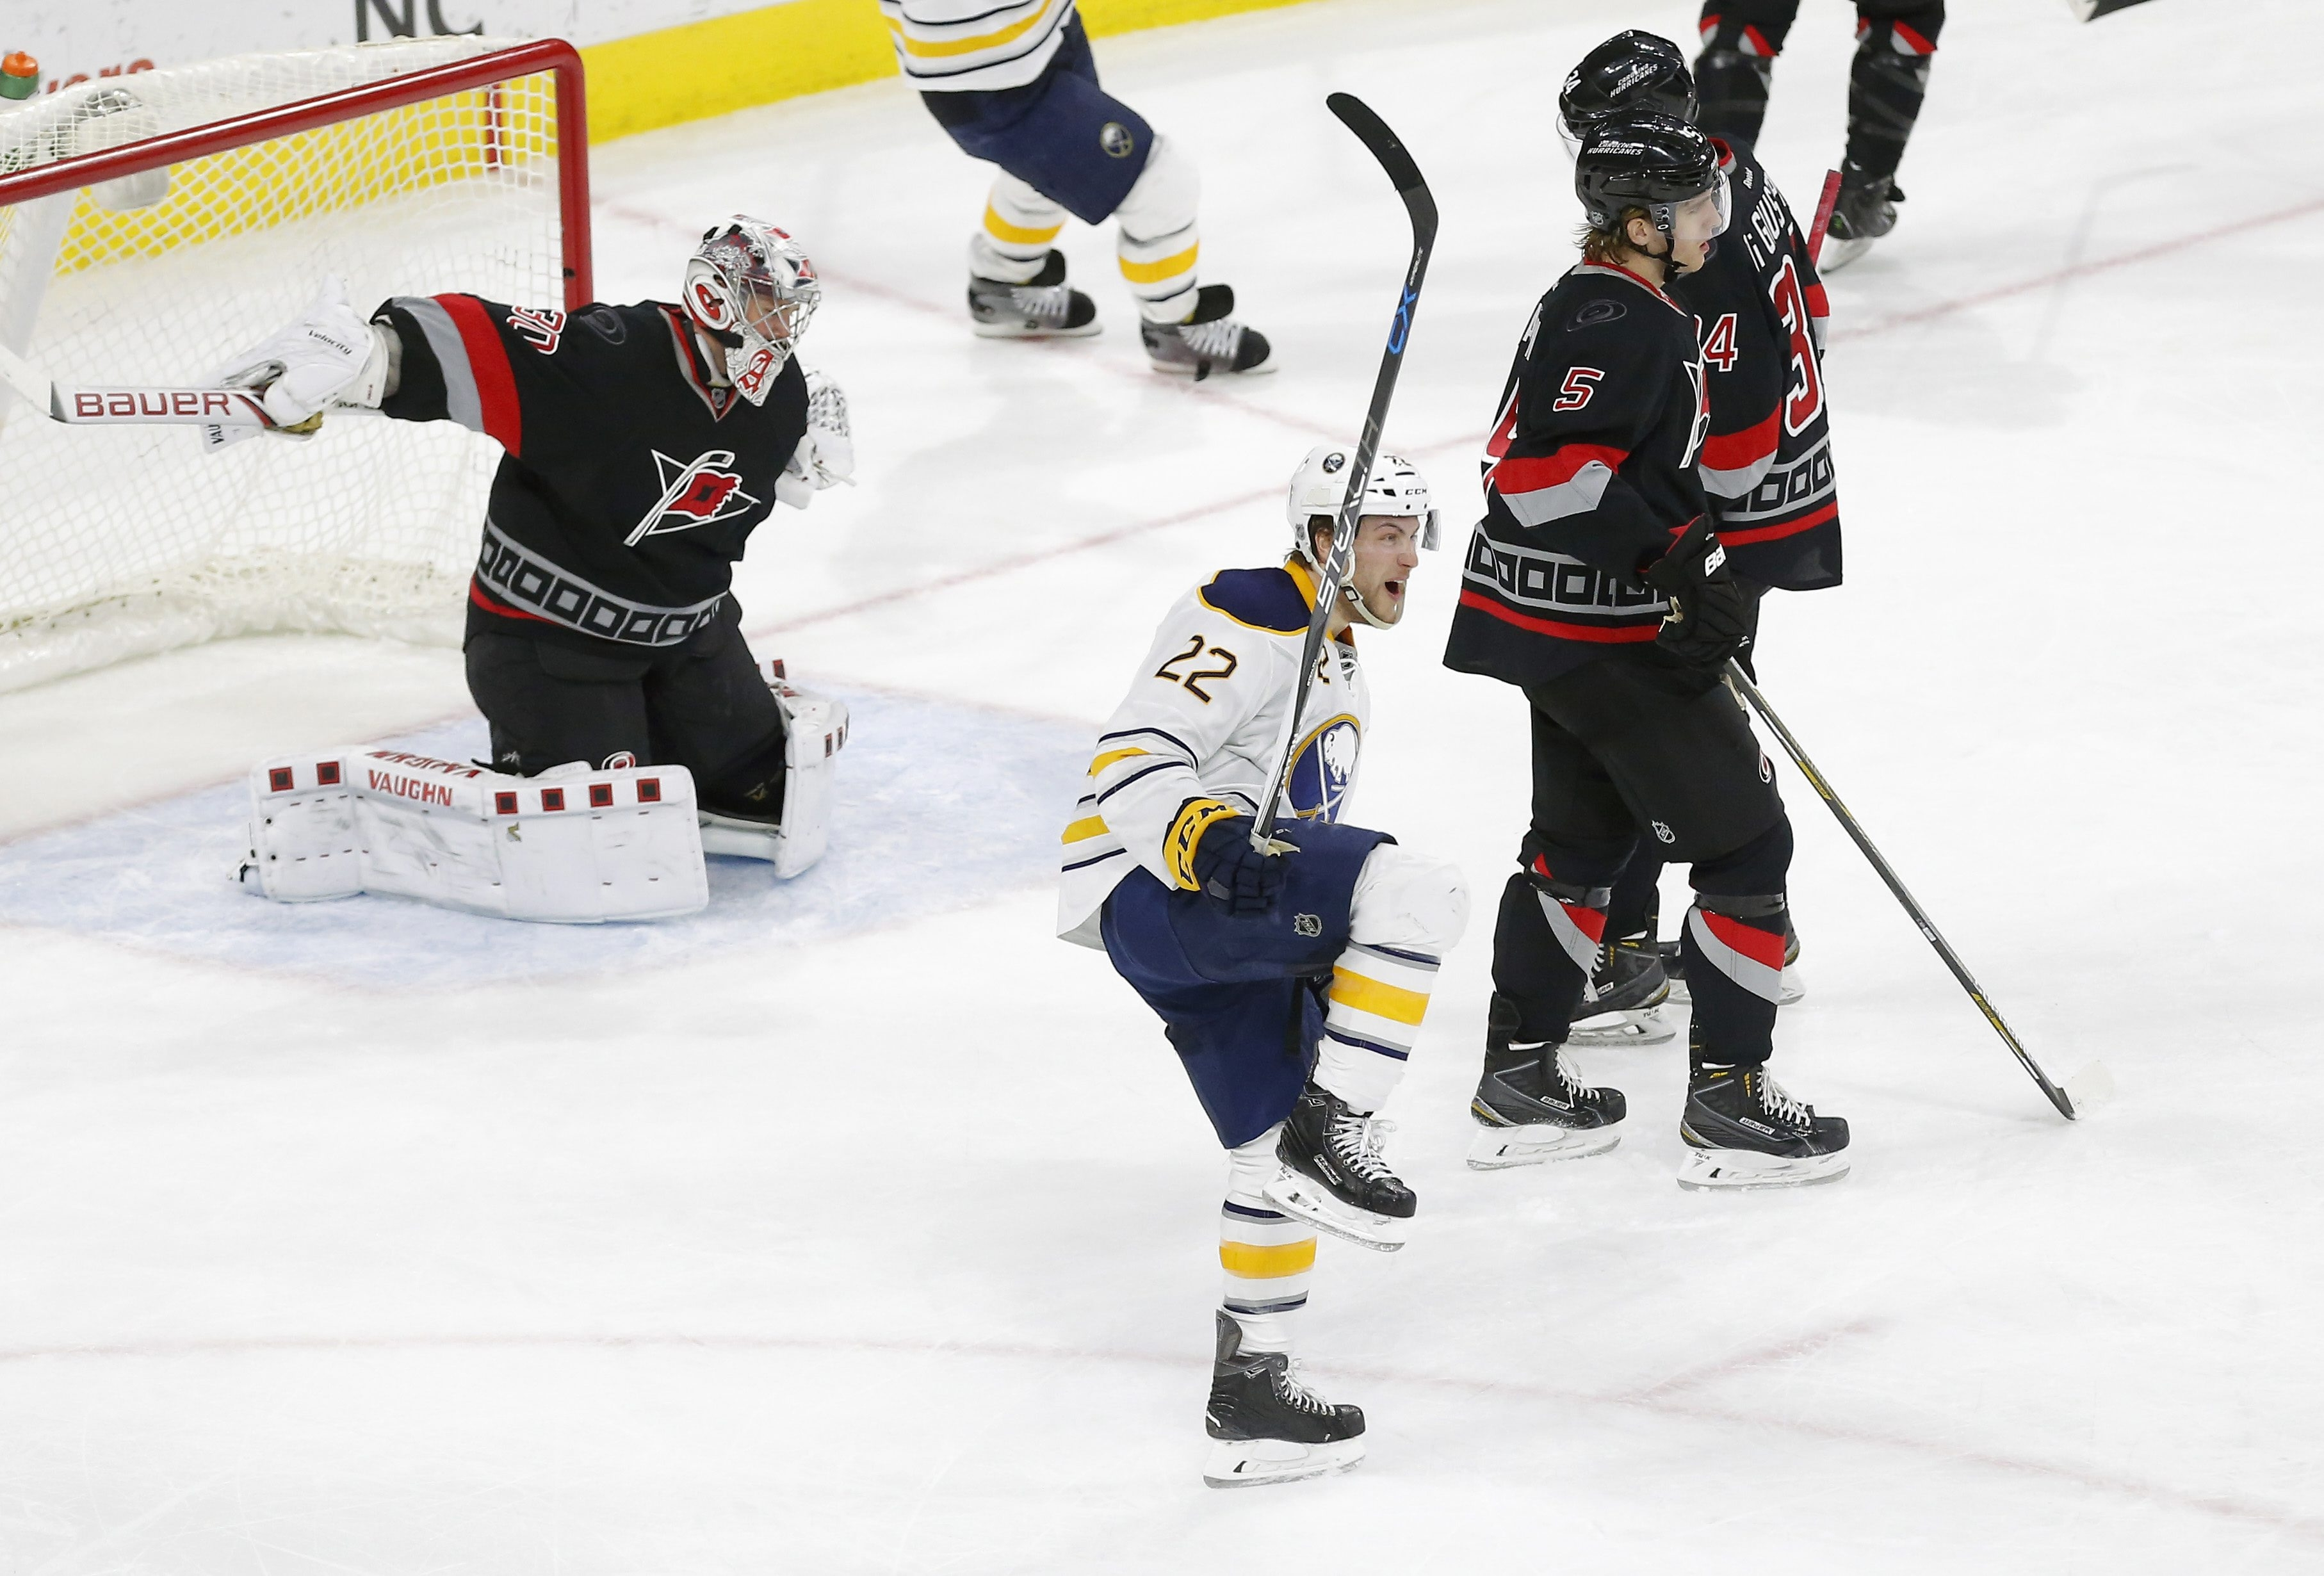 sabres score two late goals to rally past hurricanes the the buffalo sabres johan larsson 22 celebrates after he scored the winning goal during the third period chris seward news observer